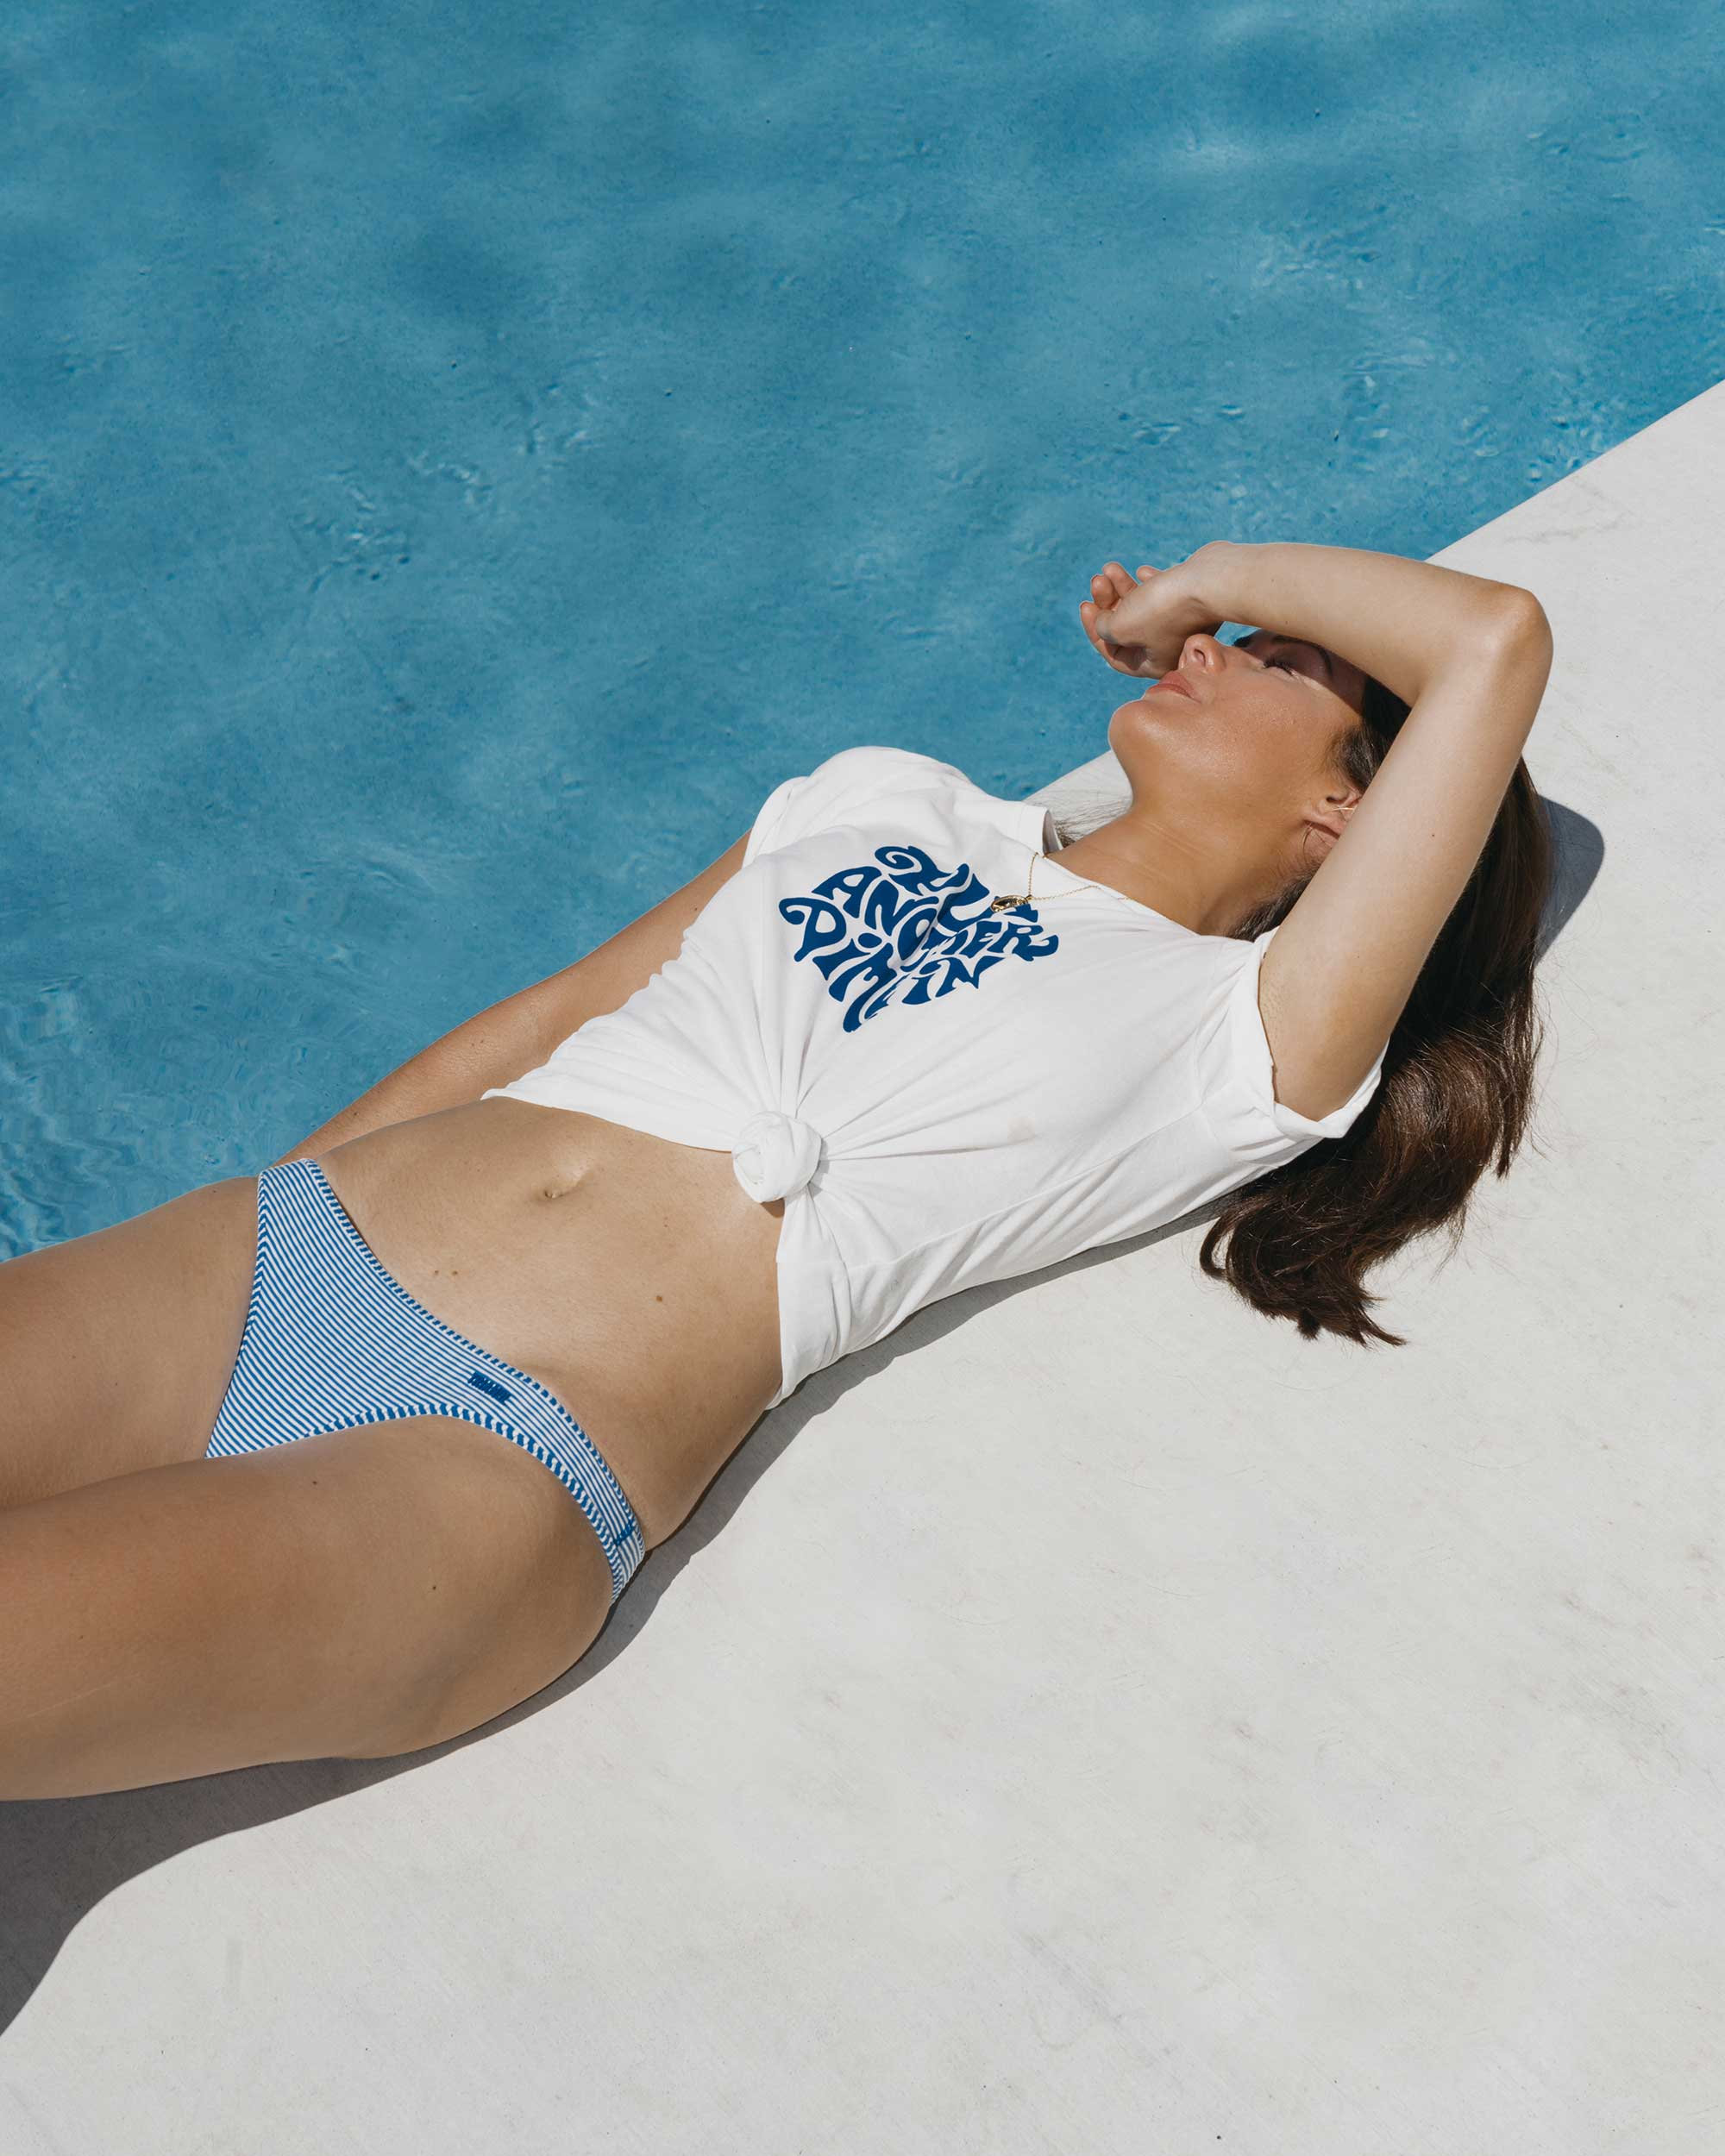 graphic tshirt with swimsuit pool outfit11.jpg